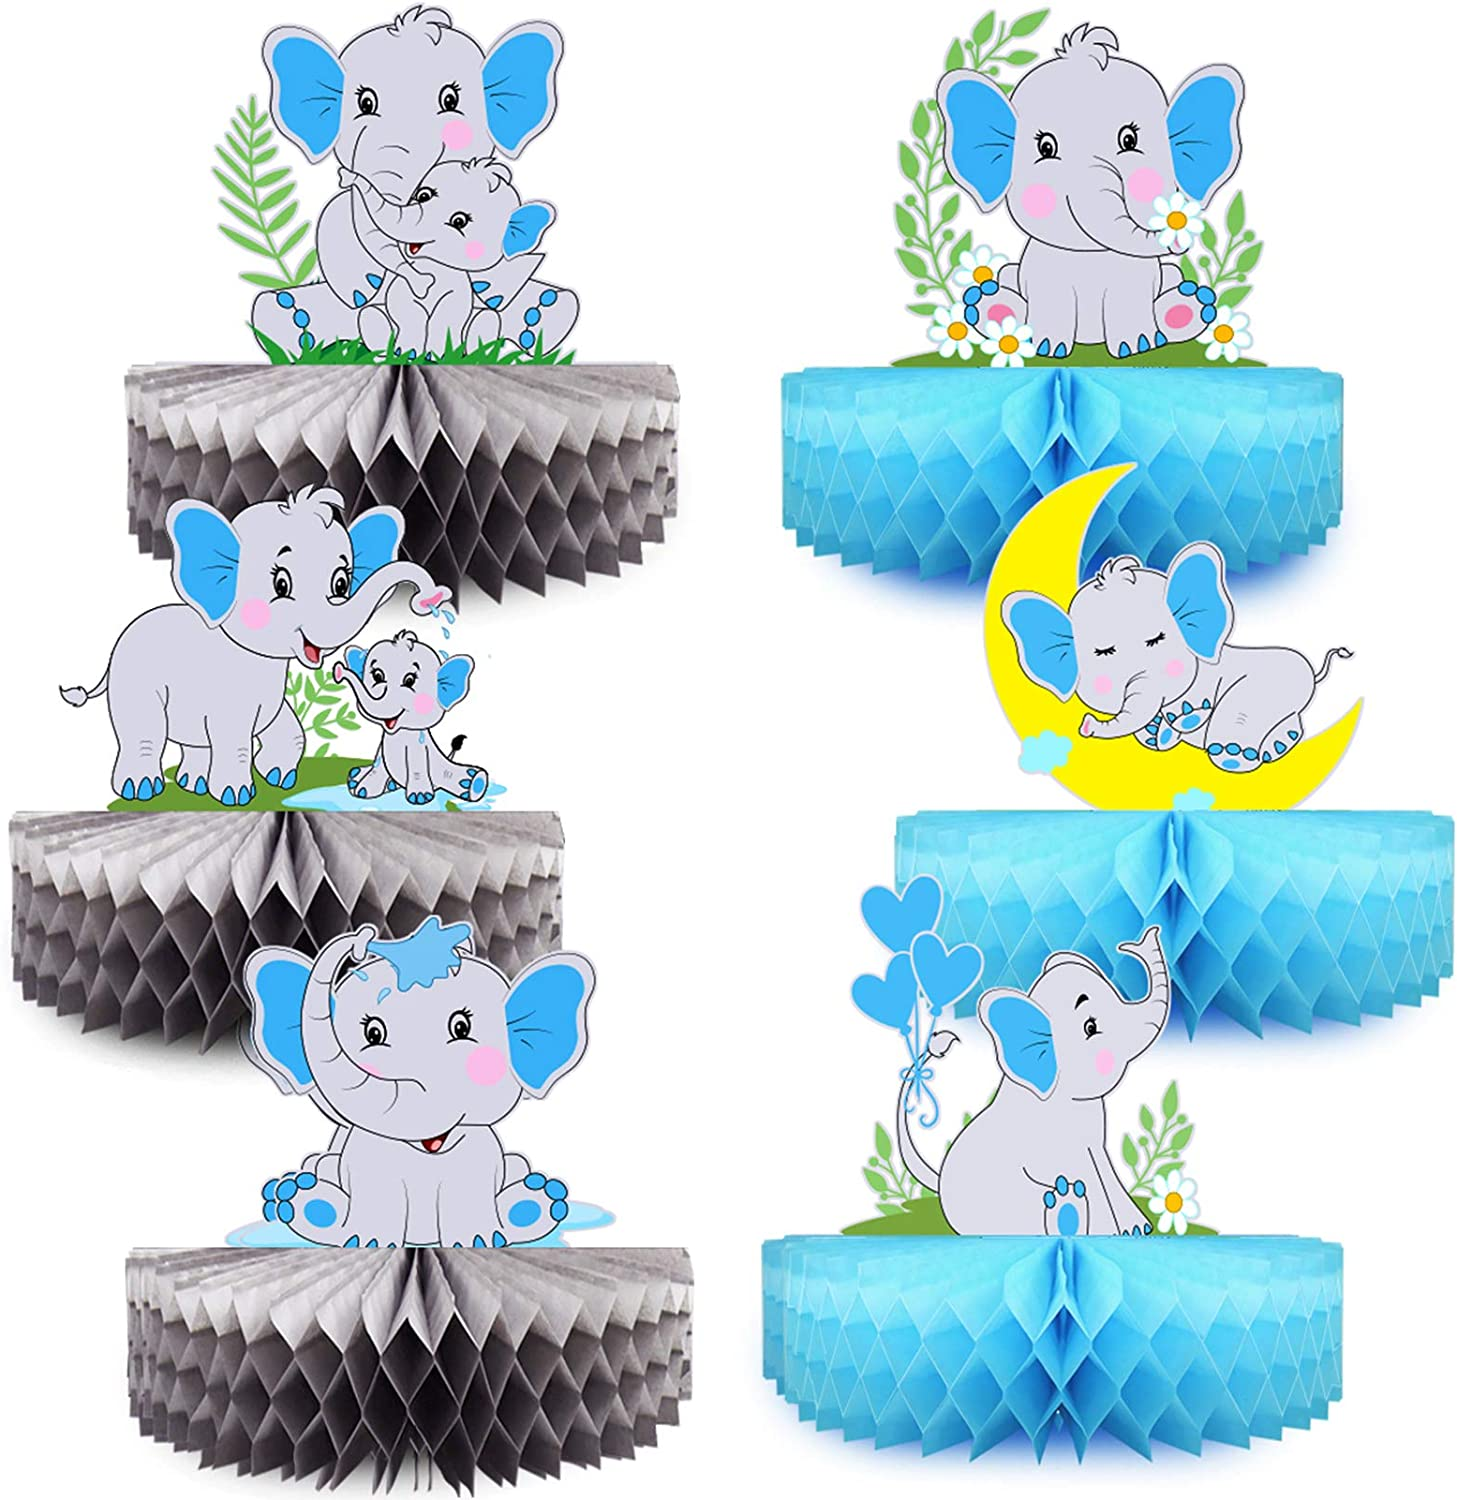 Mity rain 6 Pack Blue Elephant Honeycomb Centerpieces - Double-Sided Baby Boy Elephant Table Decorations Little Peanut Cutouts for It's A Boy Baby Shower Kids Birthday Party Supplies